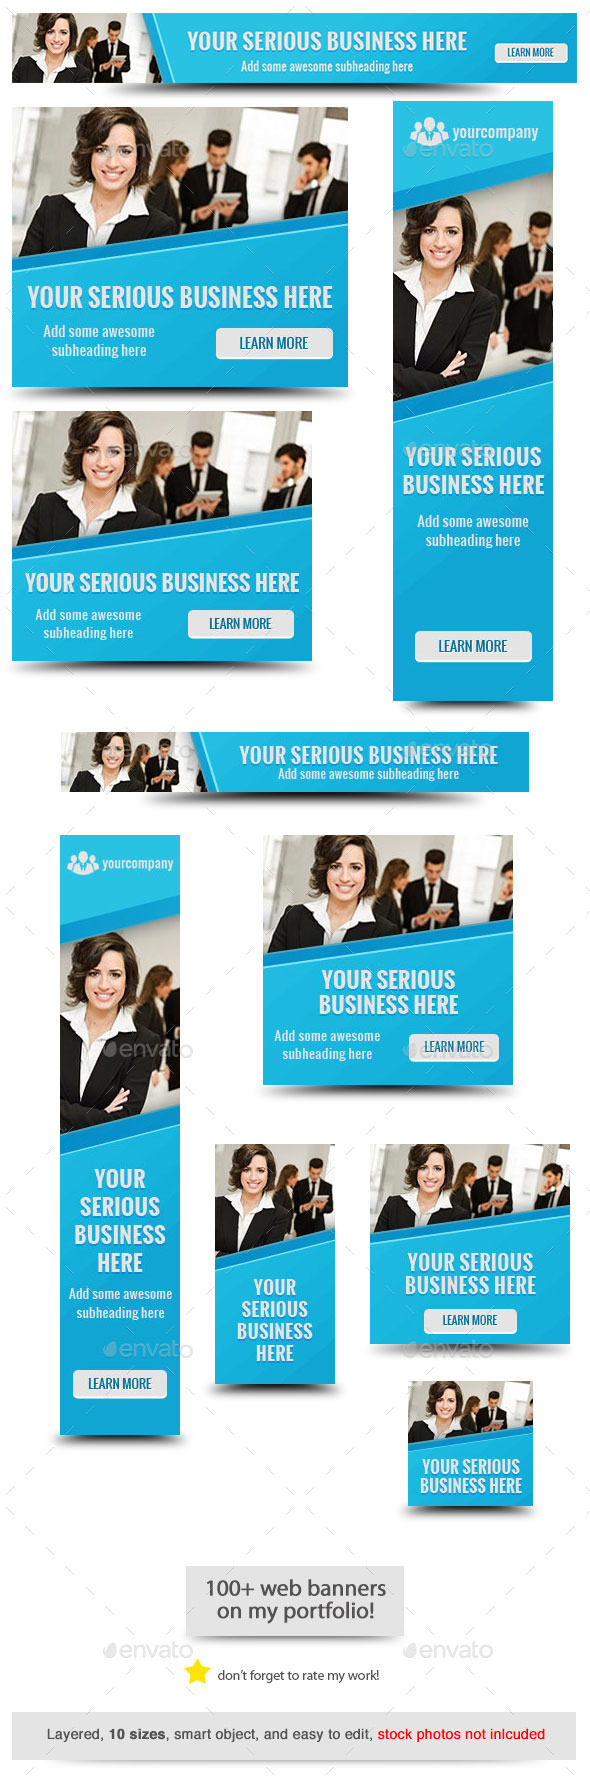 Corporate Web Banner Design Template 60 by admiral_adictus ...